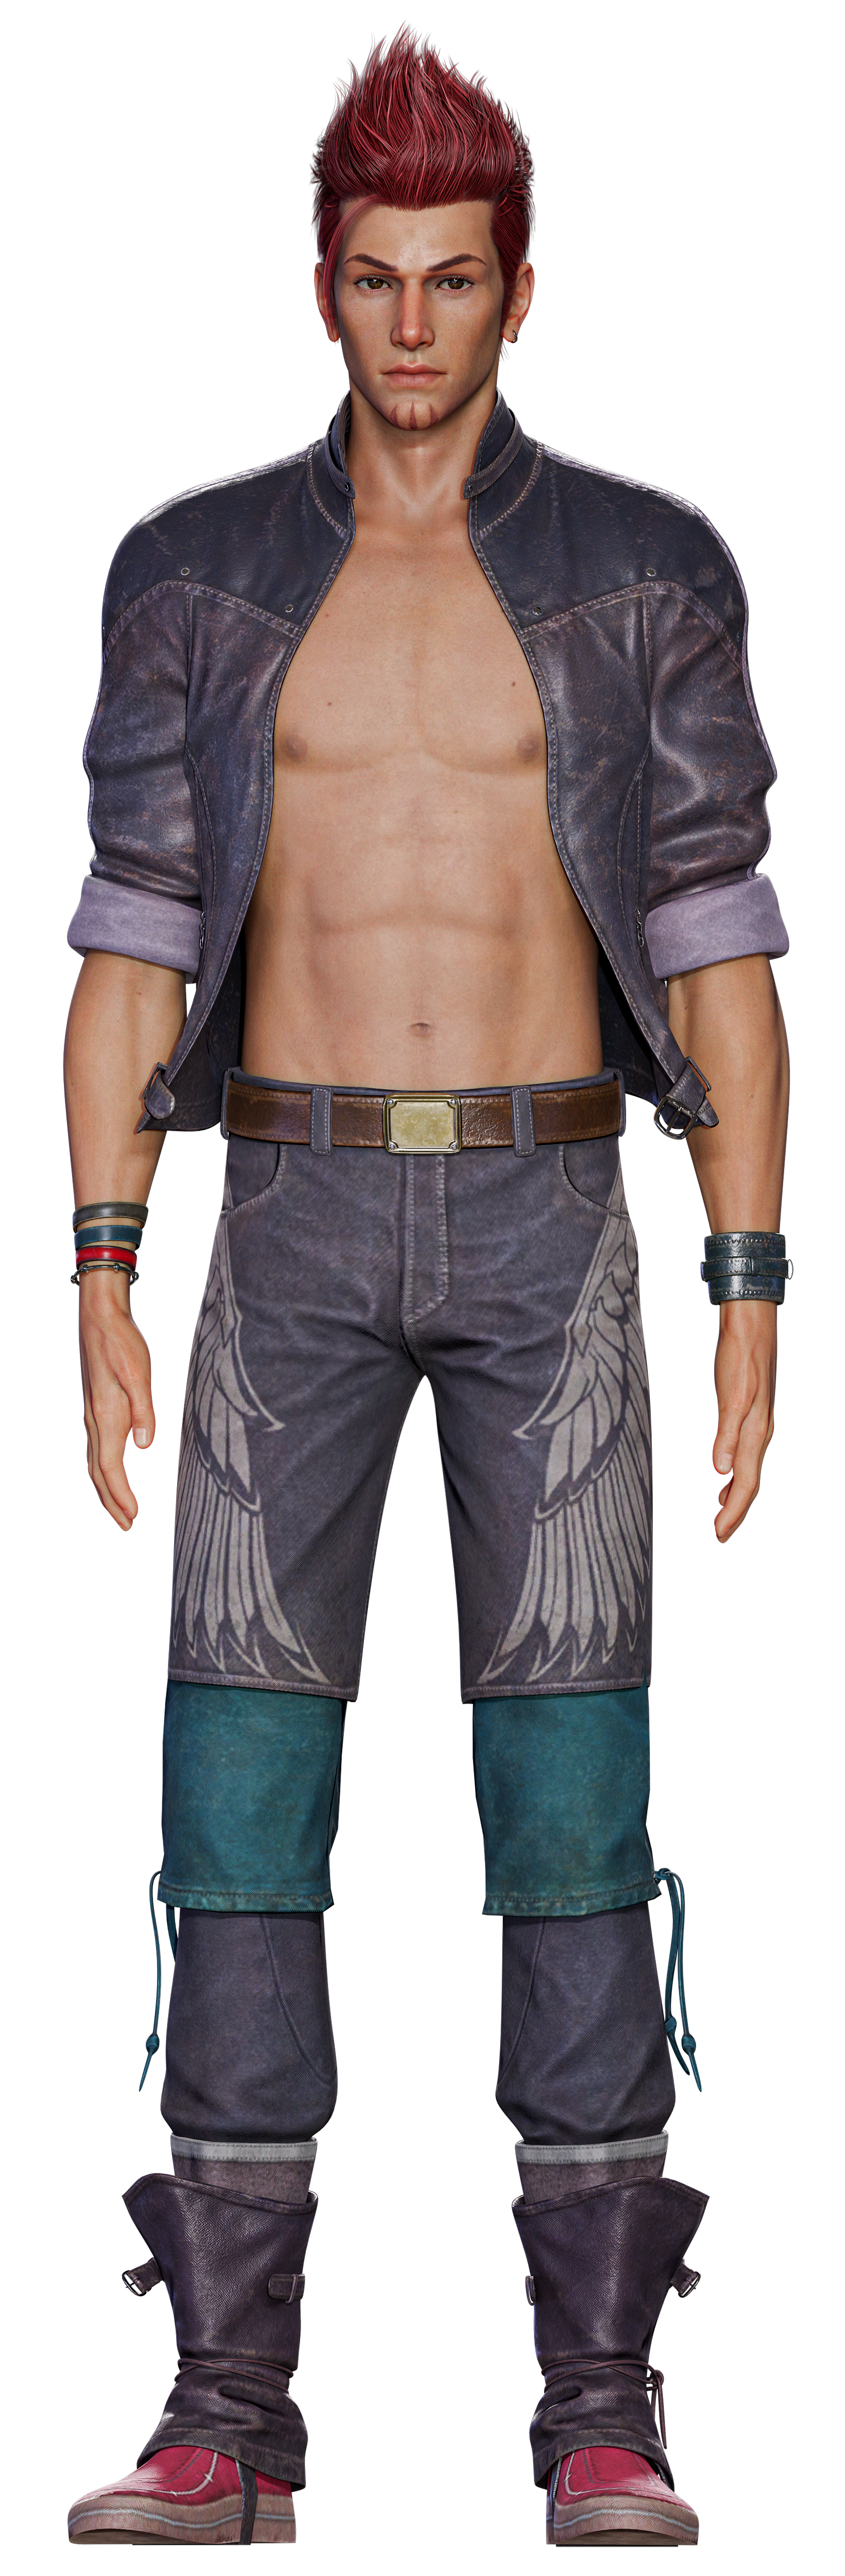 Johnny (Final Fantasy VII)